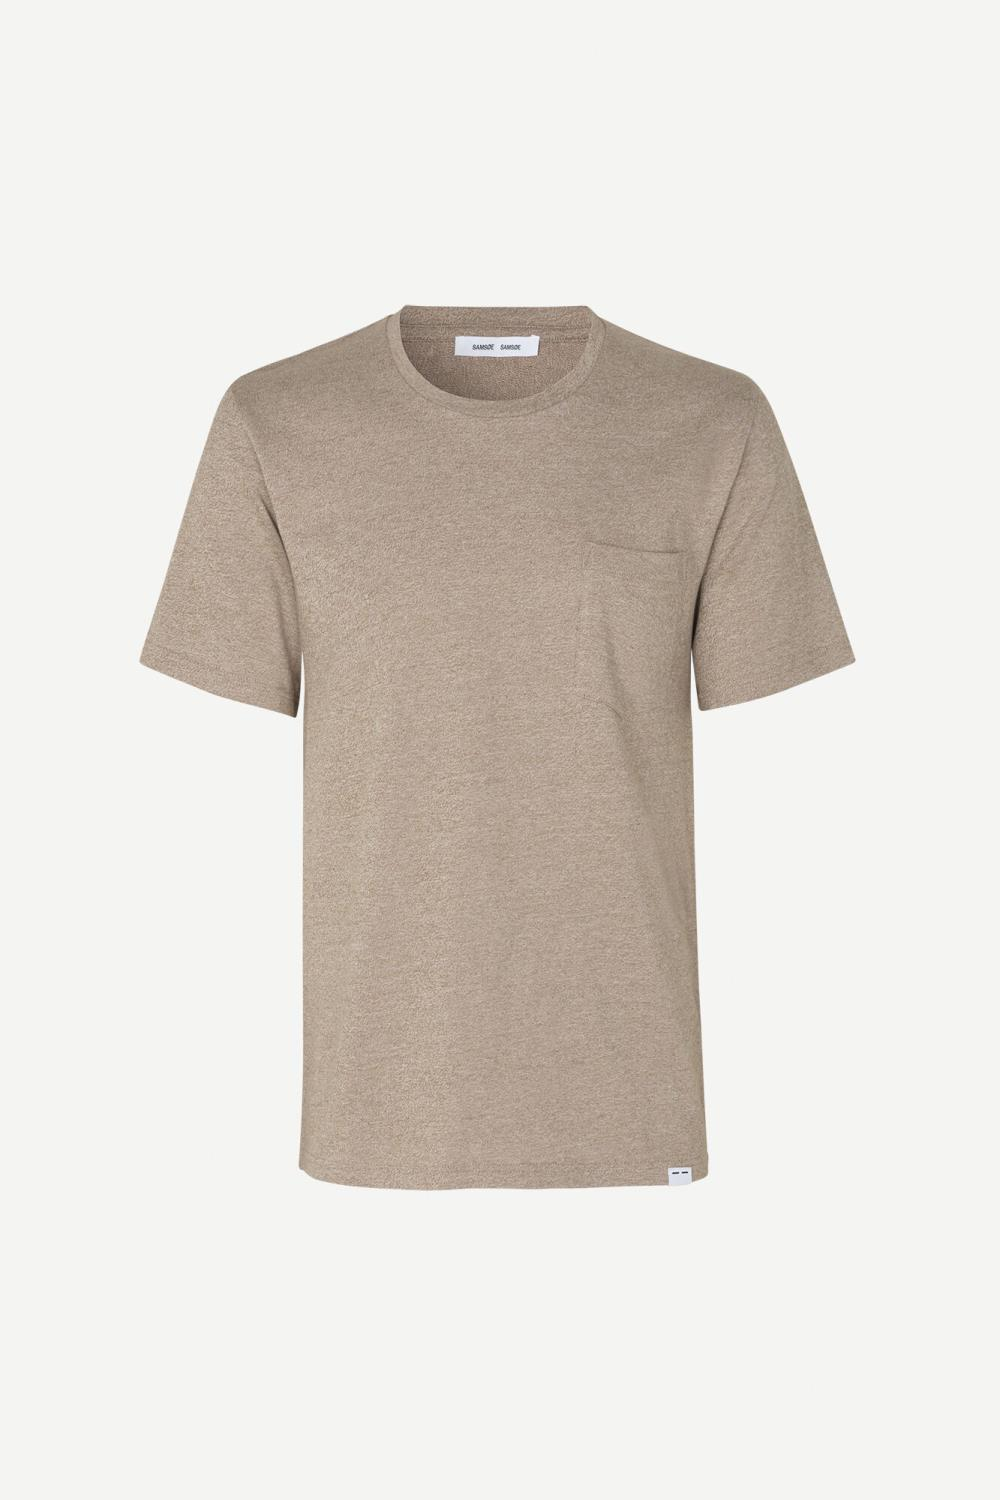 CARPO T-SHIRT - SAMSØE